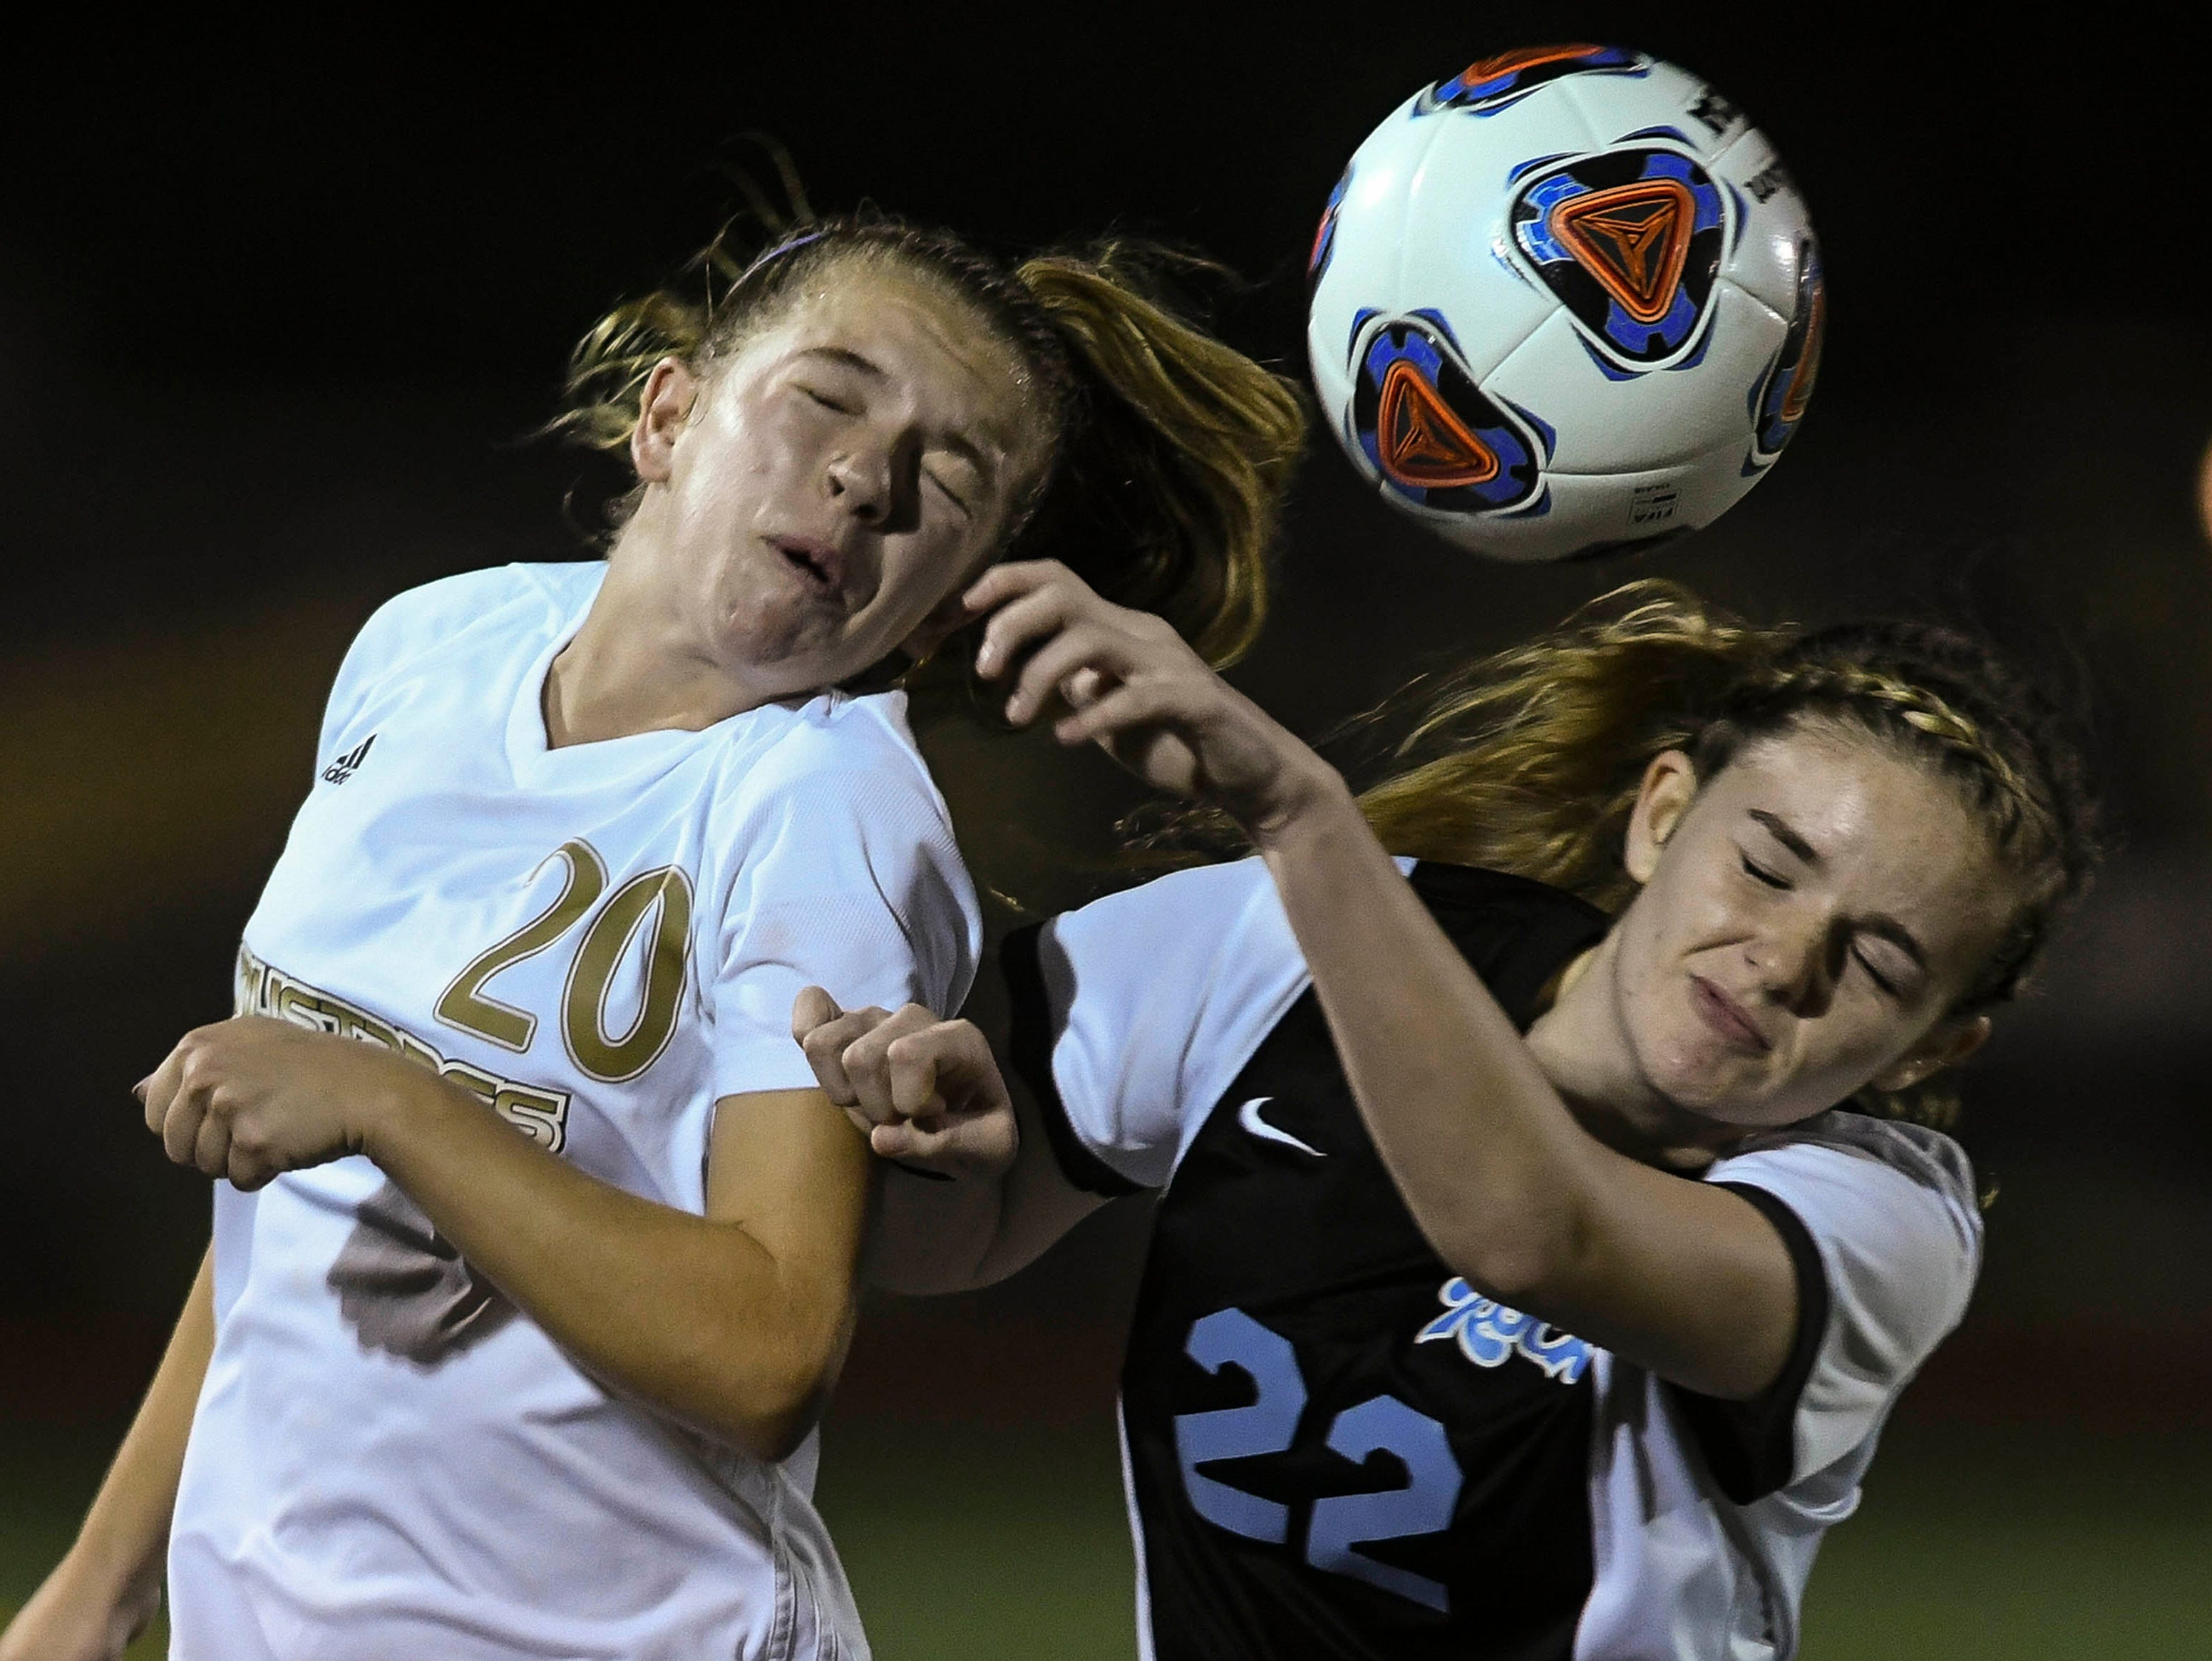 Sydney Clark of Merritt Island (20) and Leena Hungerbuhler try to head the ball during Friday's egional semifinal game.